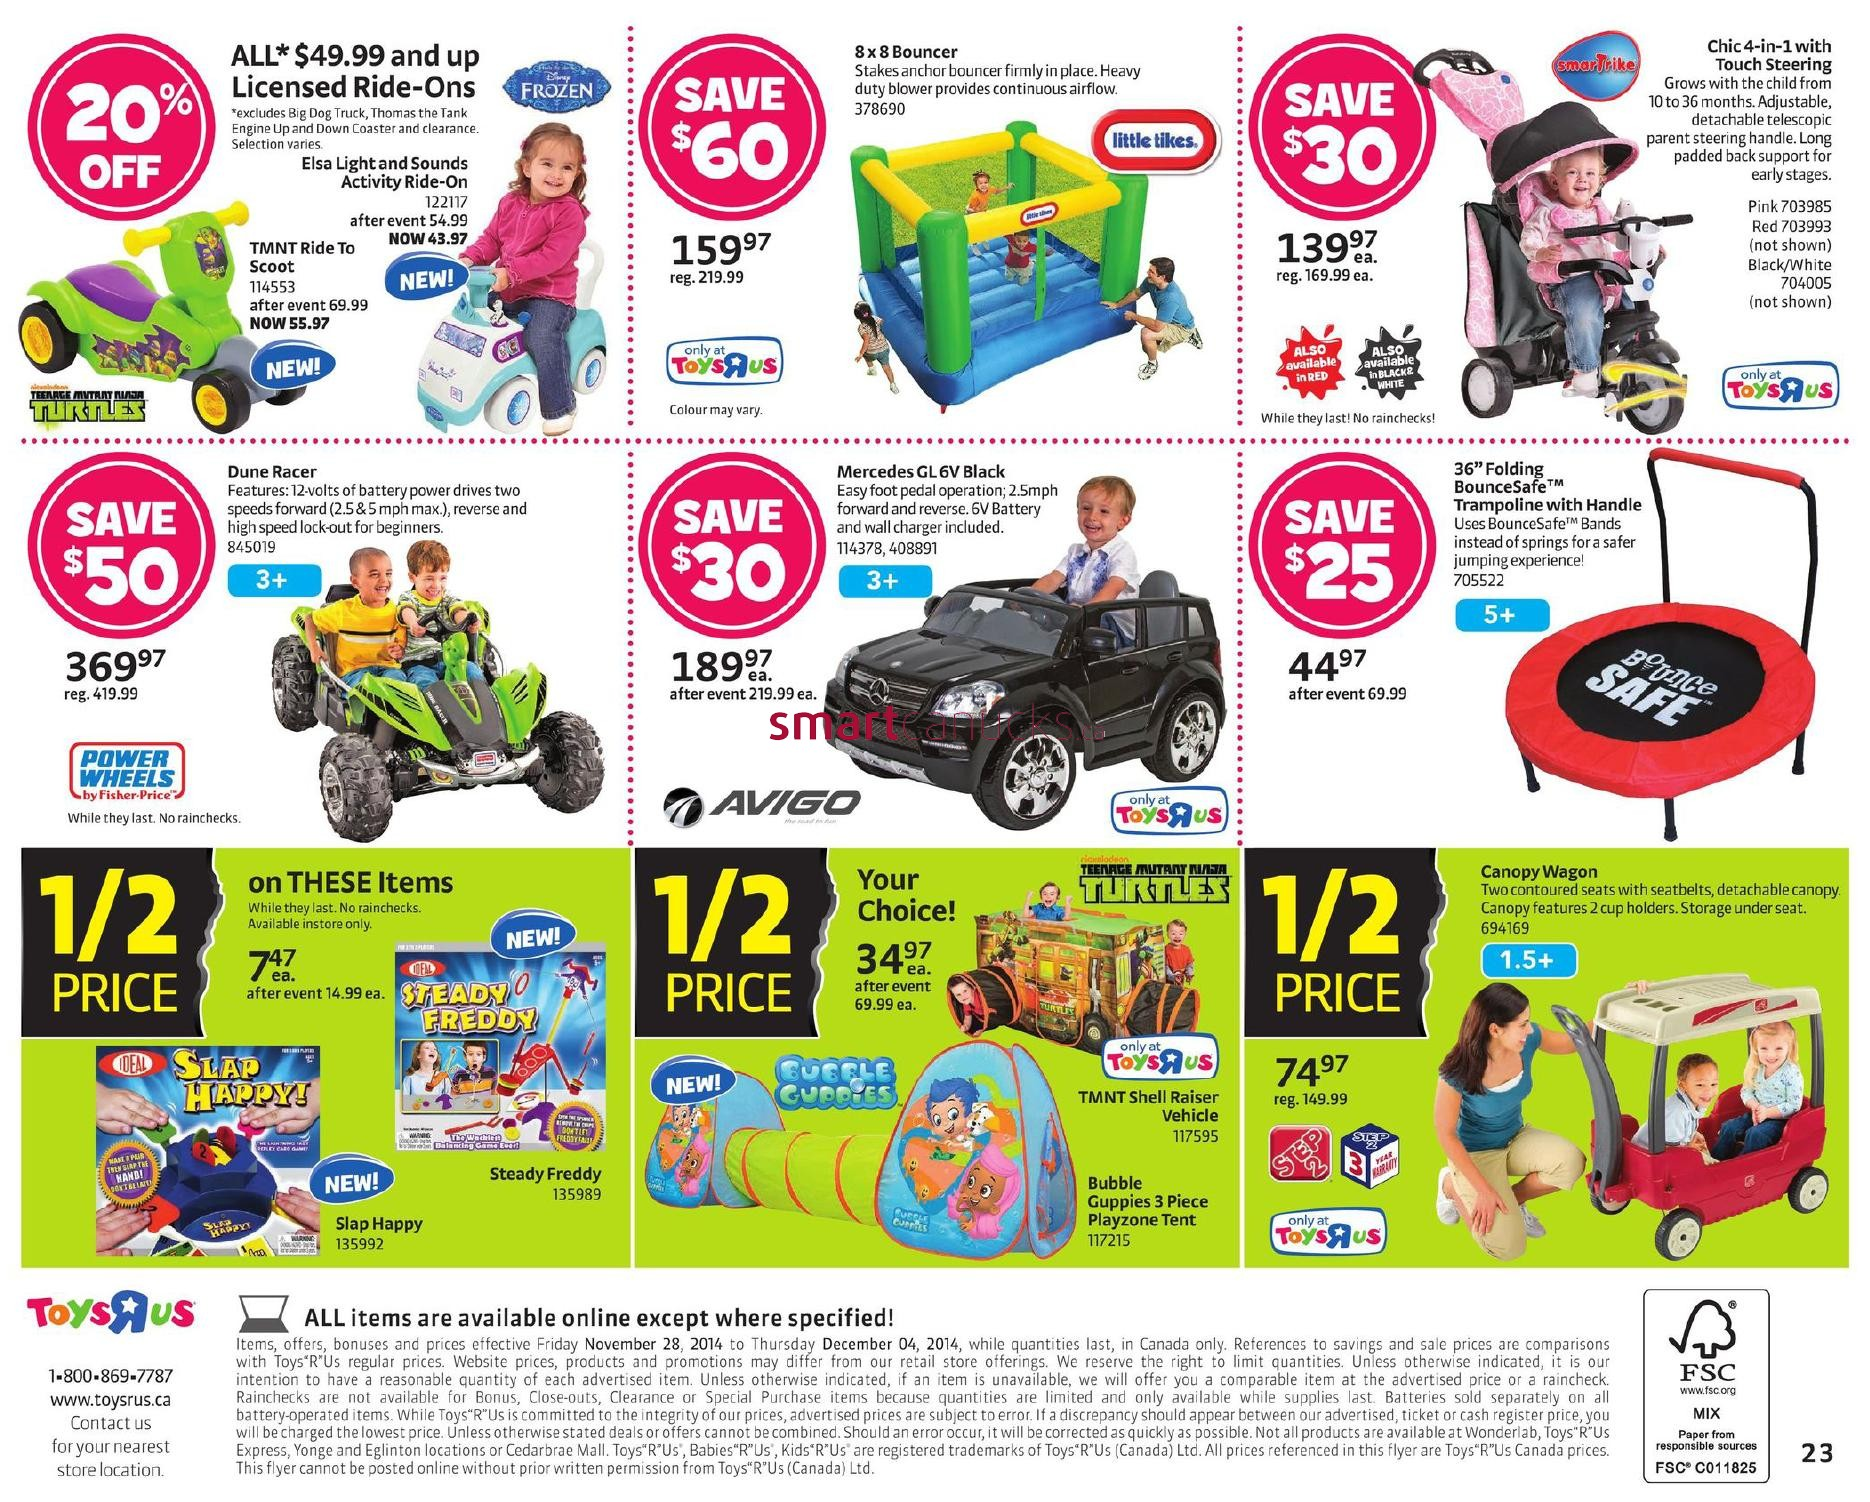 Toys R Us Flyer : Toys r us black friday canada flyer sales and deals